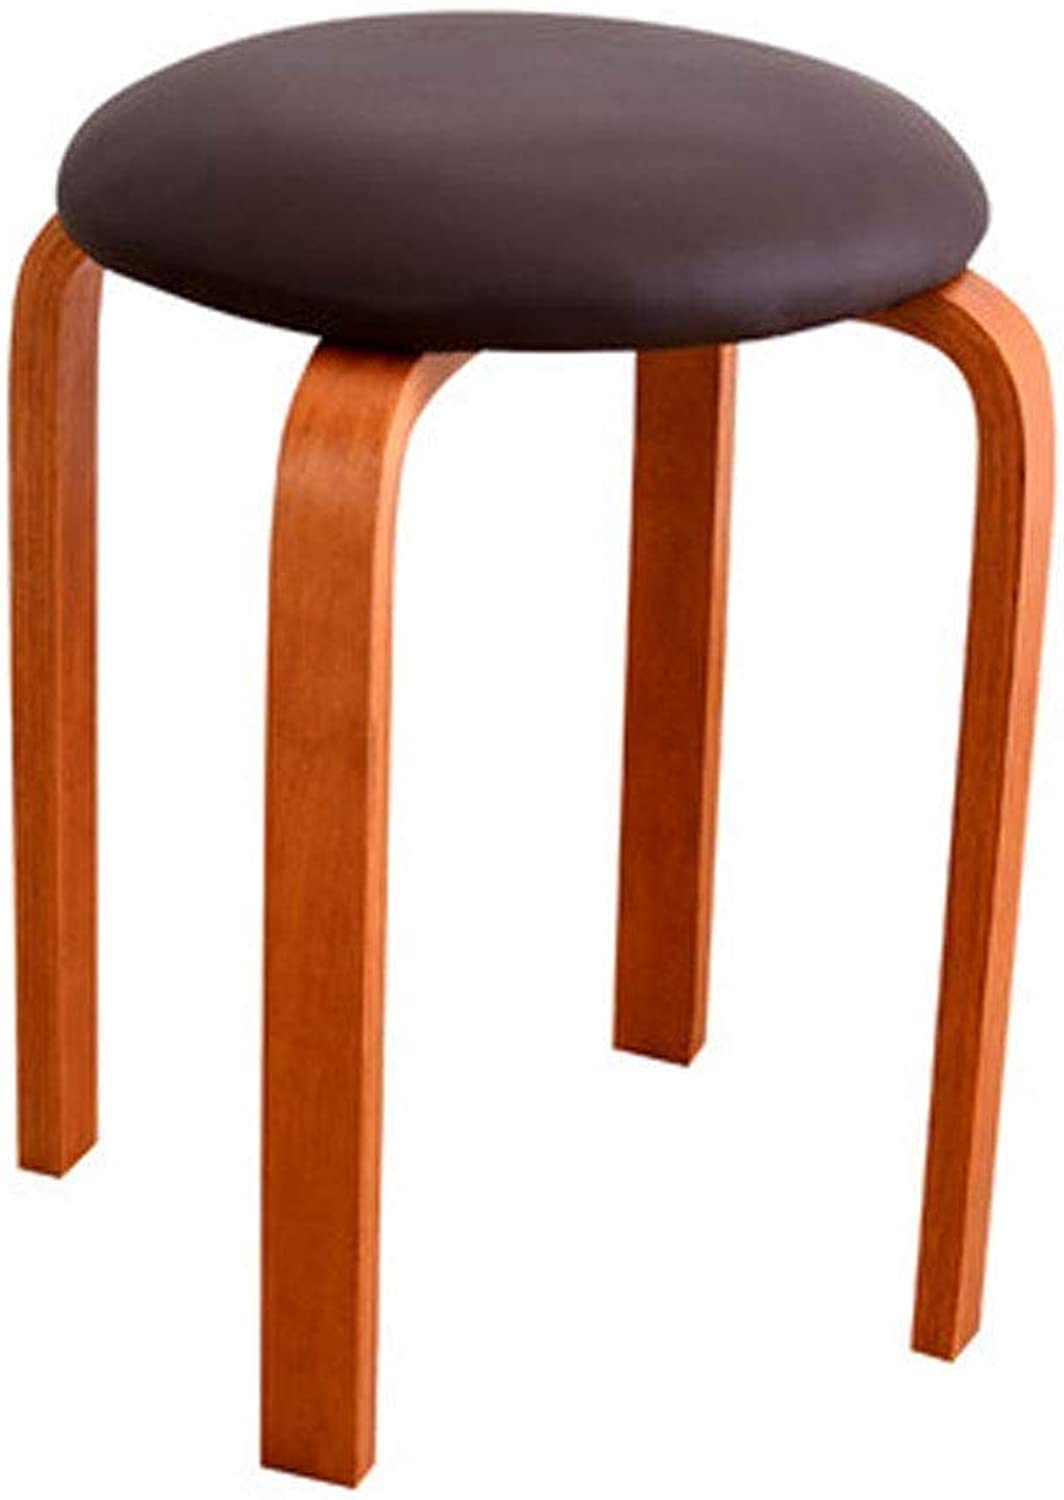 LJX-marryjgo Fashion and Creative Round Stool Dining Stool Low Stool Home Stool Dining Table Stool Bench Solid Wood Stool, Suitable for All Corners of The Family